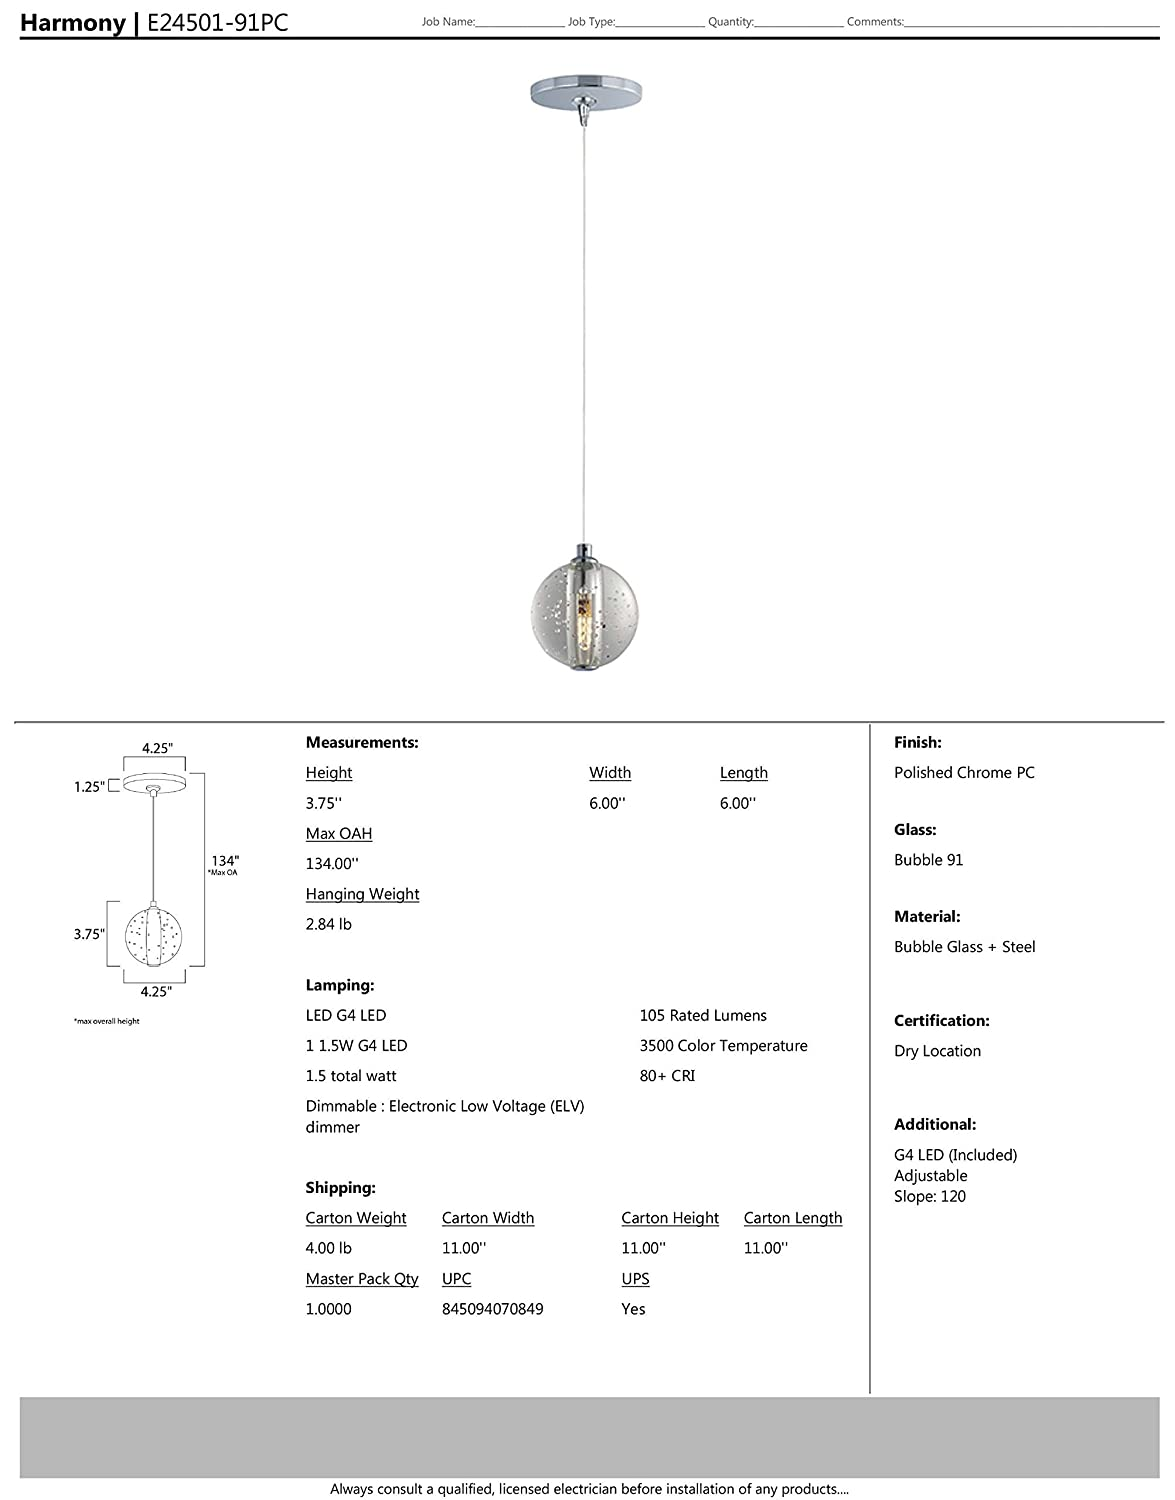 Polished Chrome Finish 1575 Rated Lumens ET2 E24501-91PC Harmony 1-Light RapidJack Pendant and Canopy Mini Pendant Dry Safety Rated 4W Max. Bubble Glass G4 LED Bulb Low-Voltage Electronic Dimmer Shade Material 3000K Color Temp.